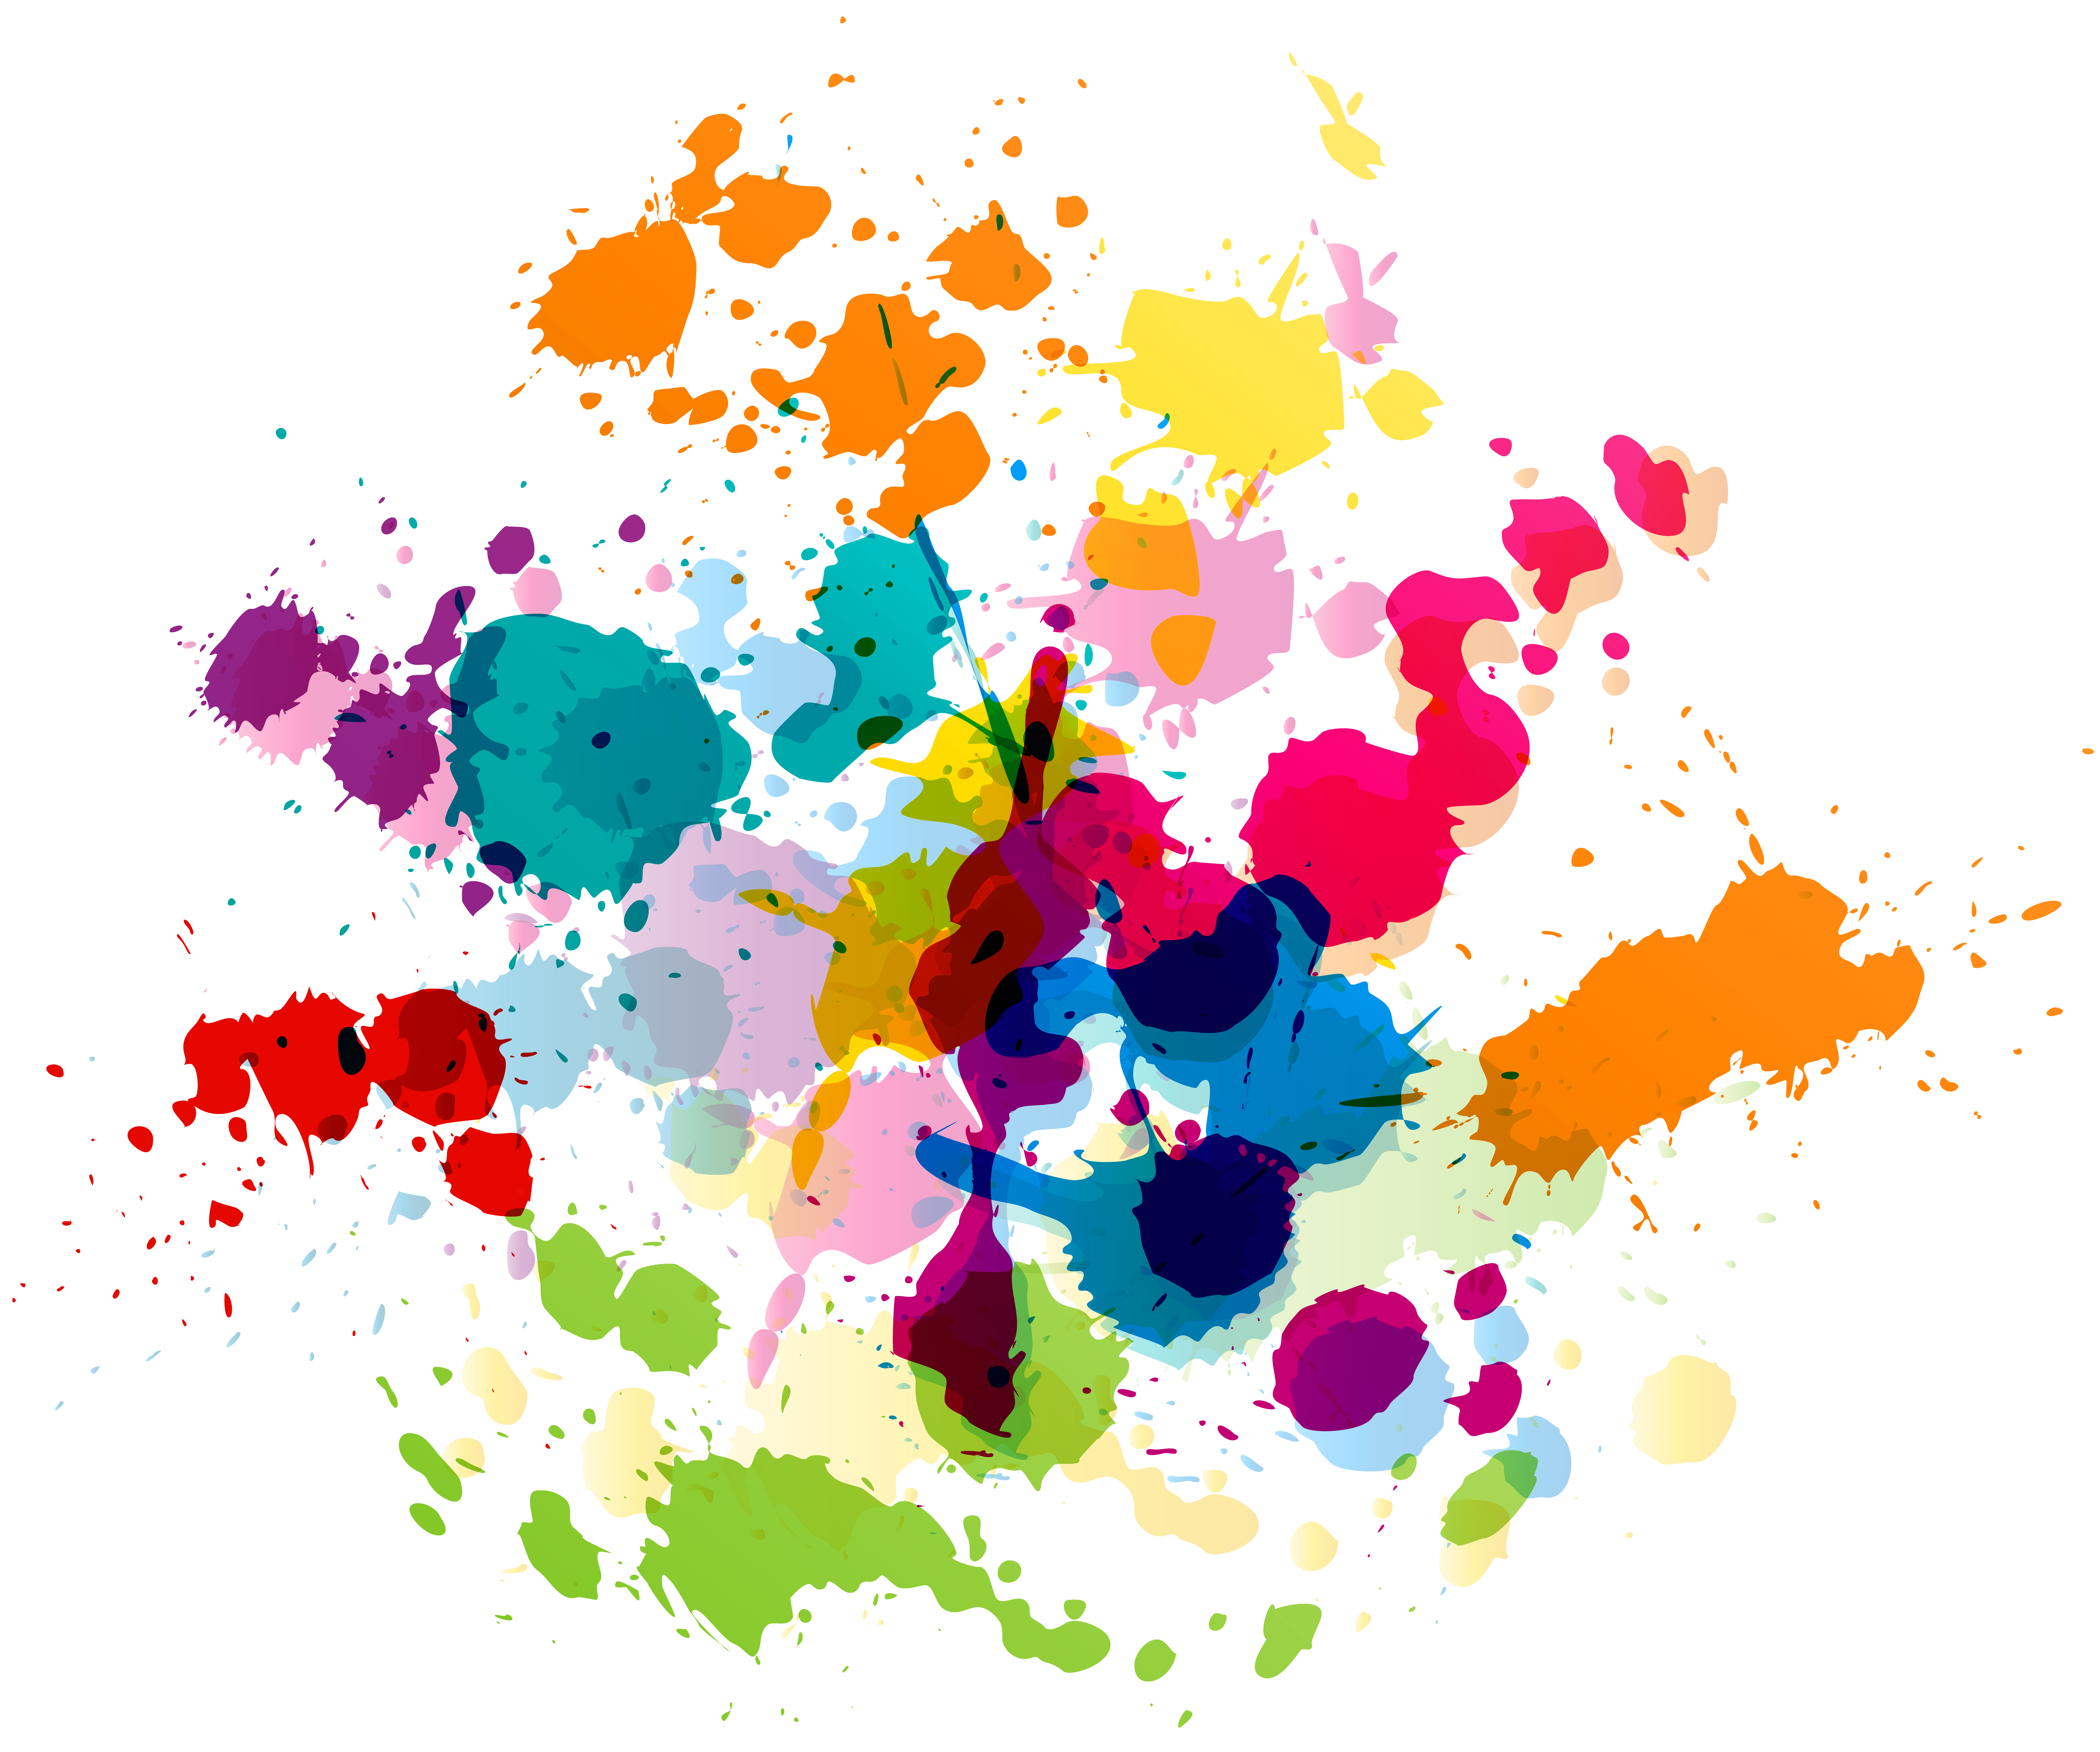 Paint Splat Png Free Paint Splat Png Transparent Images 41293 Pngio Splatter is a mark left by any type of dye when the dye will however in case, you may want to earn quick and easy money, you can call yourself a painter and. pngio com